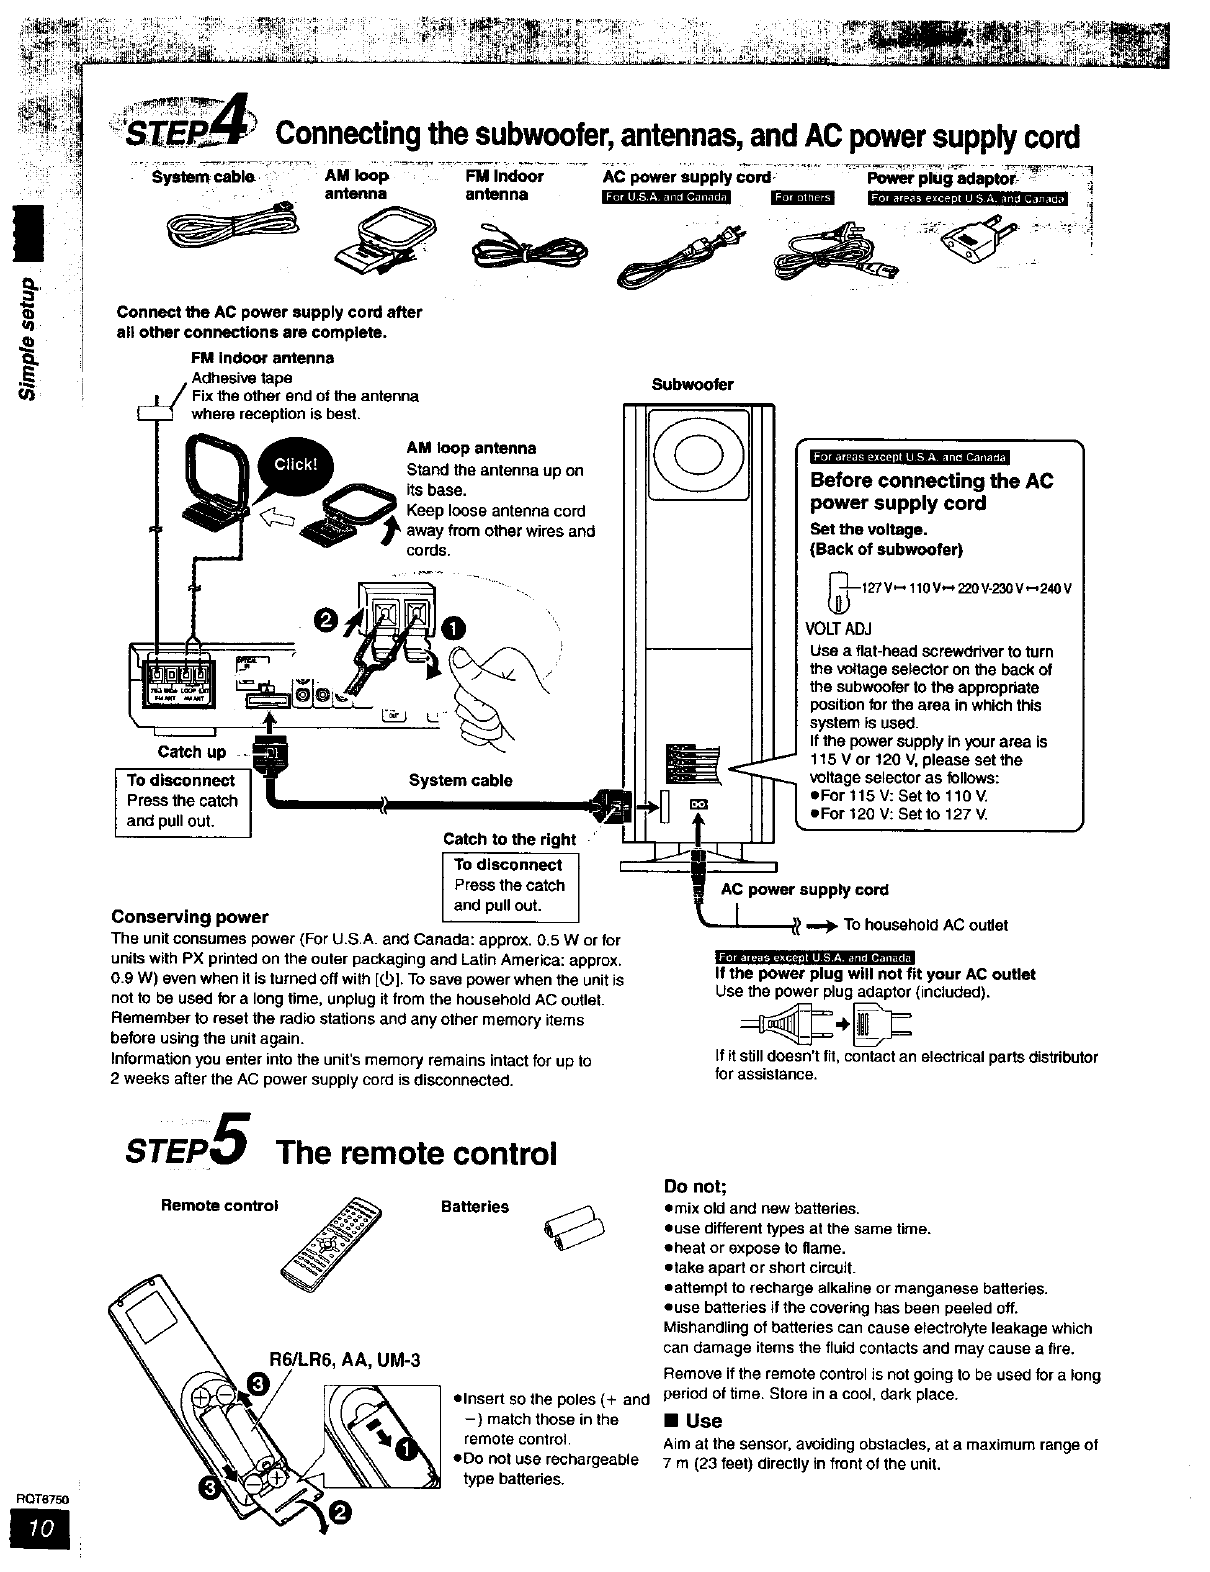 Panasonic Home Theatre Manual L0312003 To Legally In Canada Add 240v Power Outlet From Stove Ut